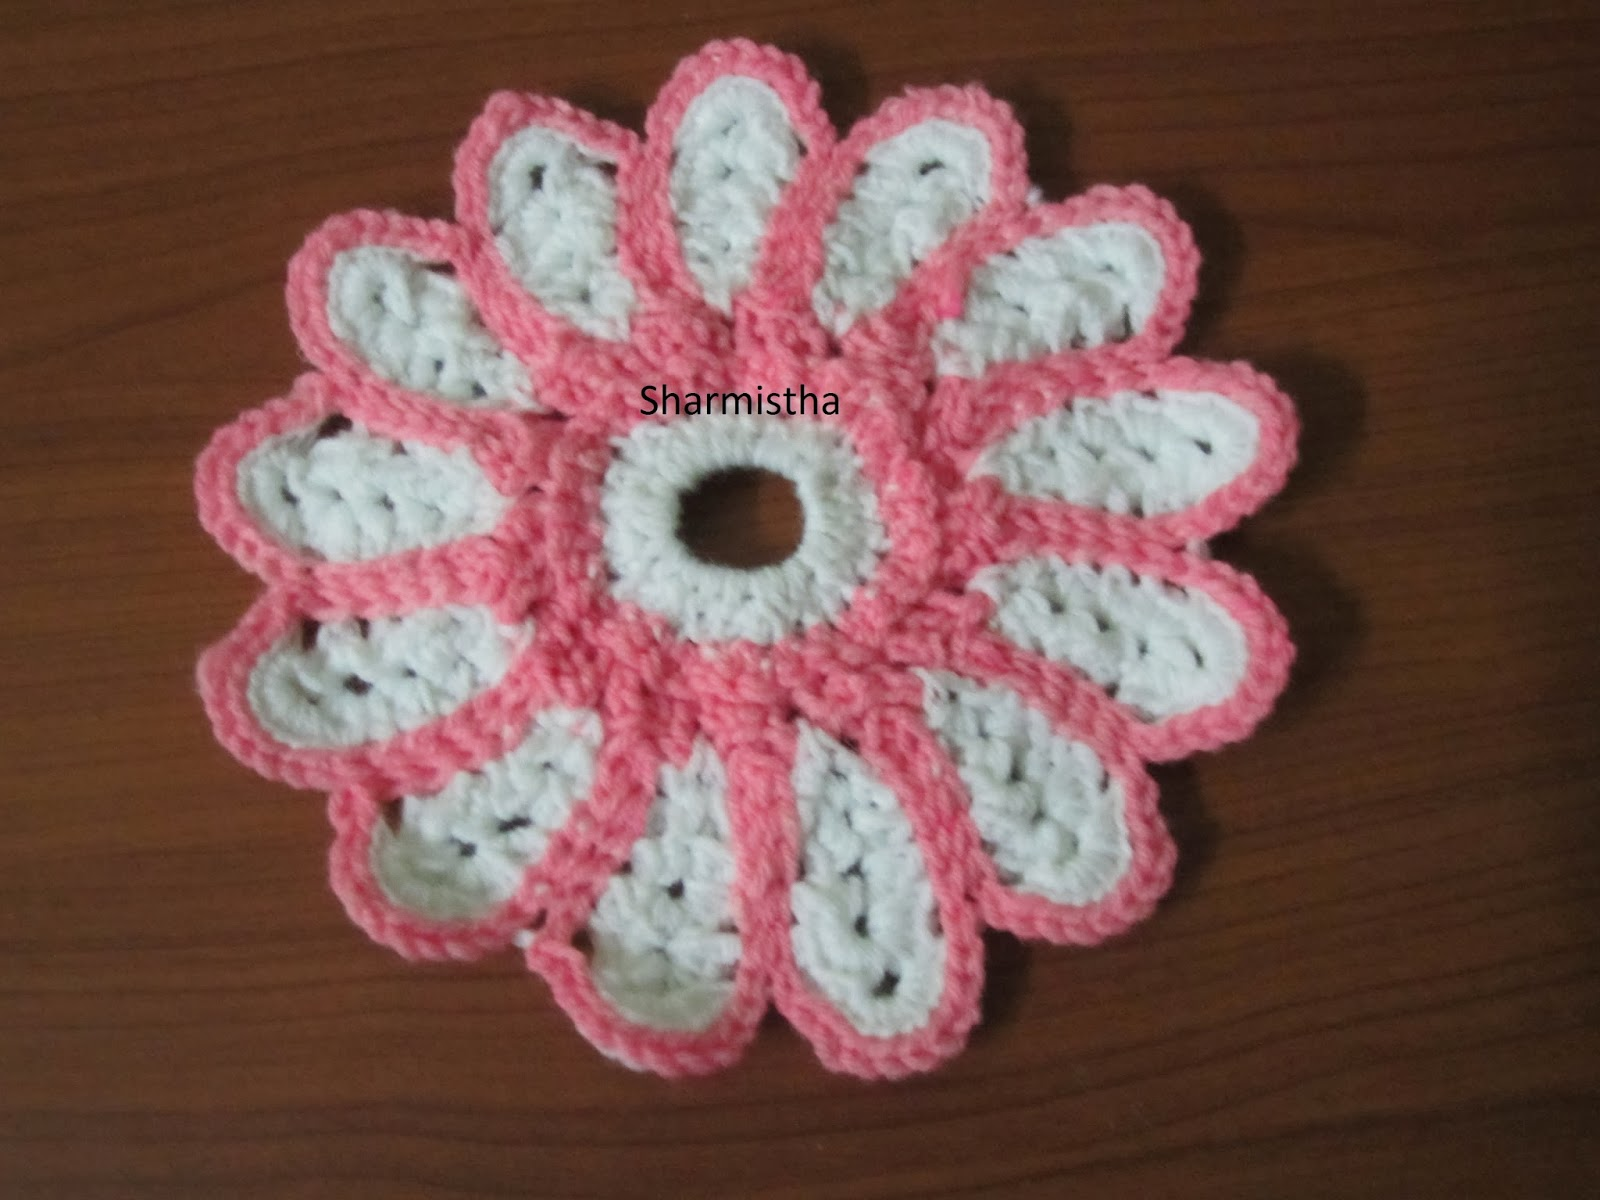 The World Crocheted Coasters